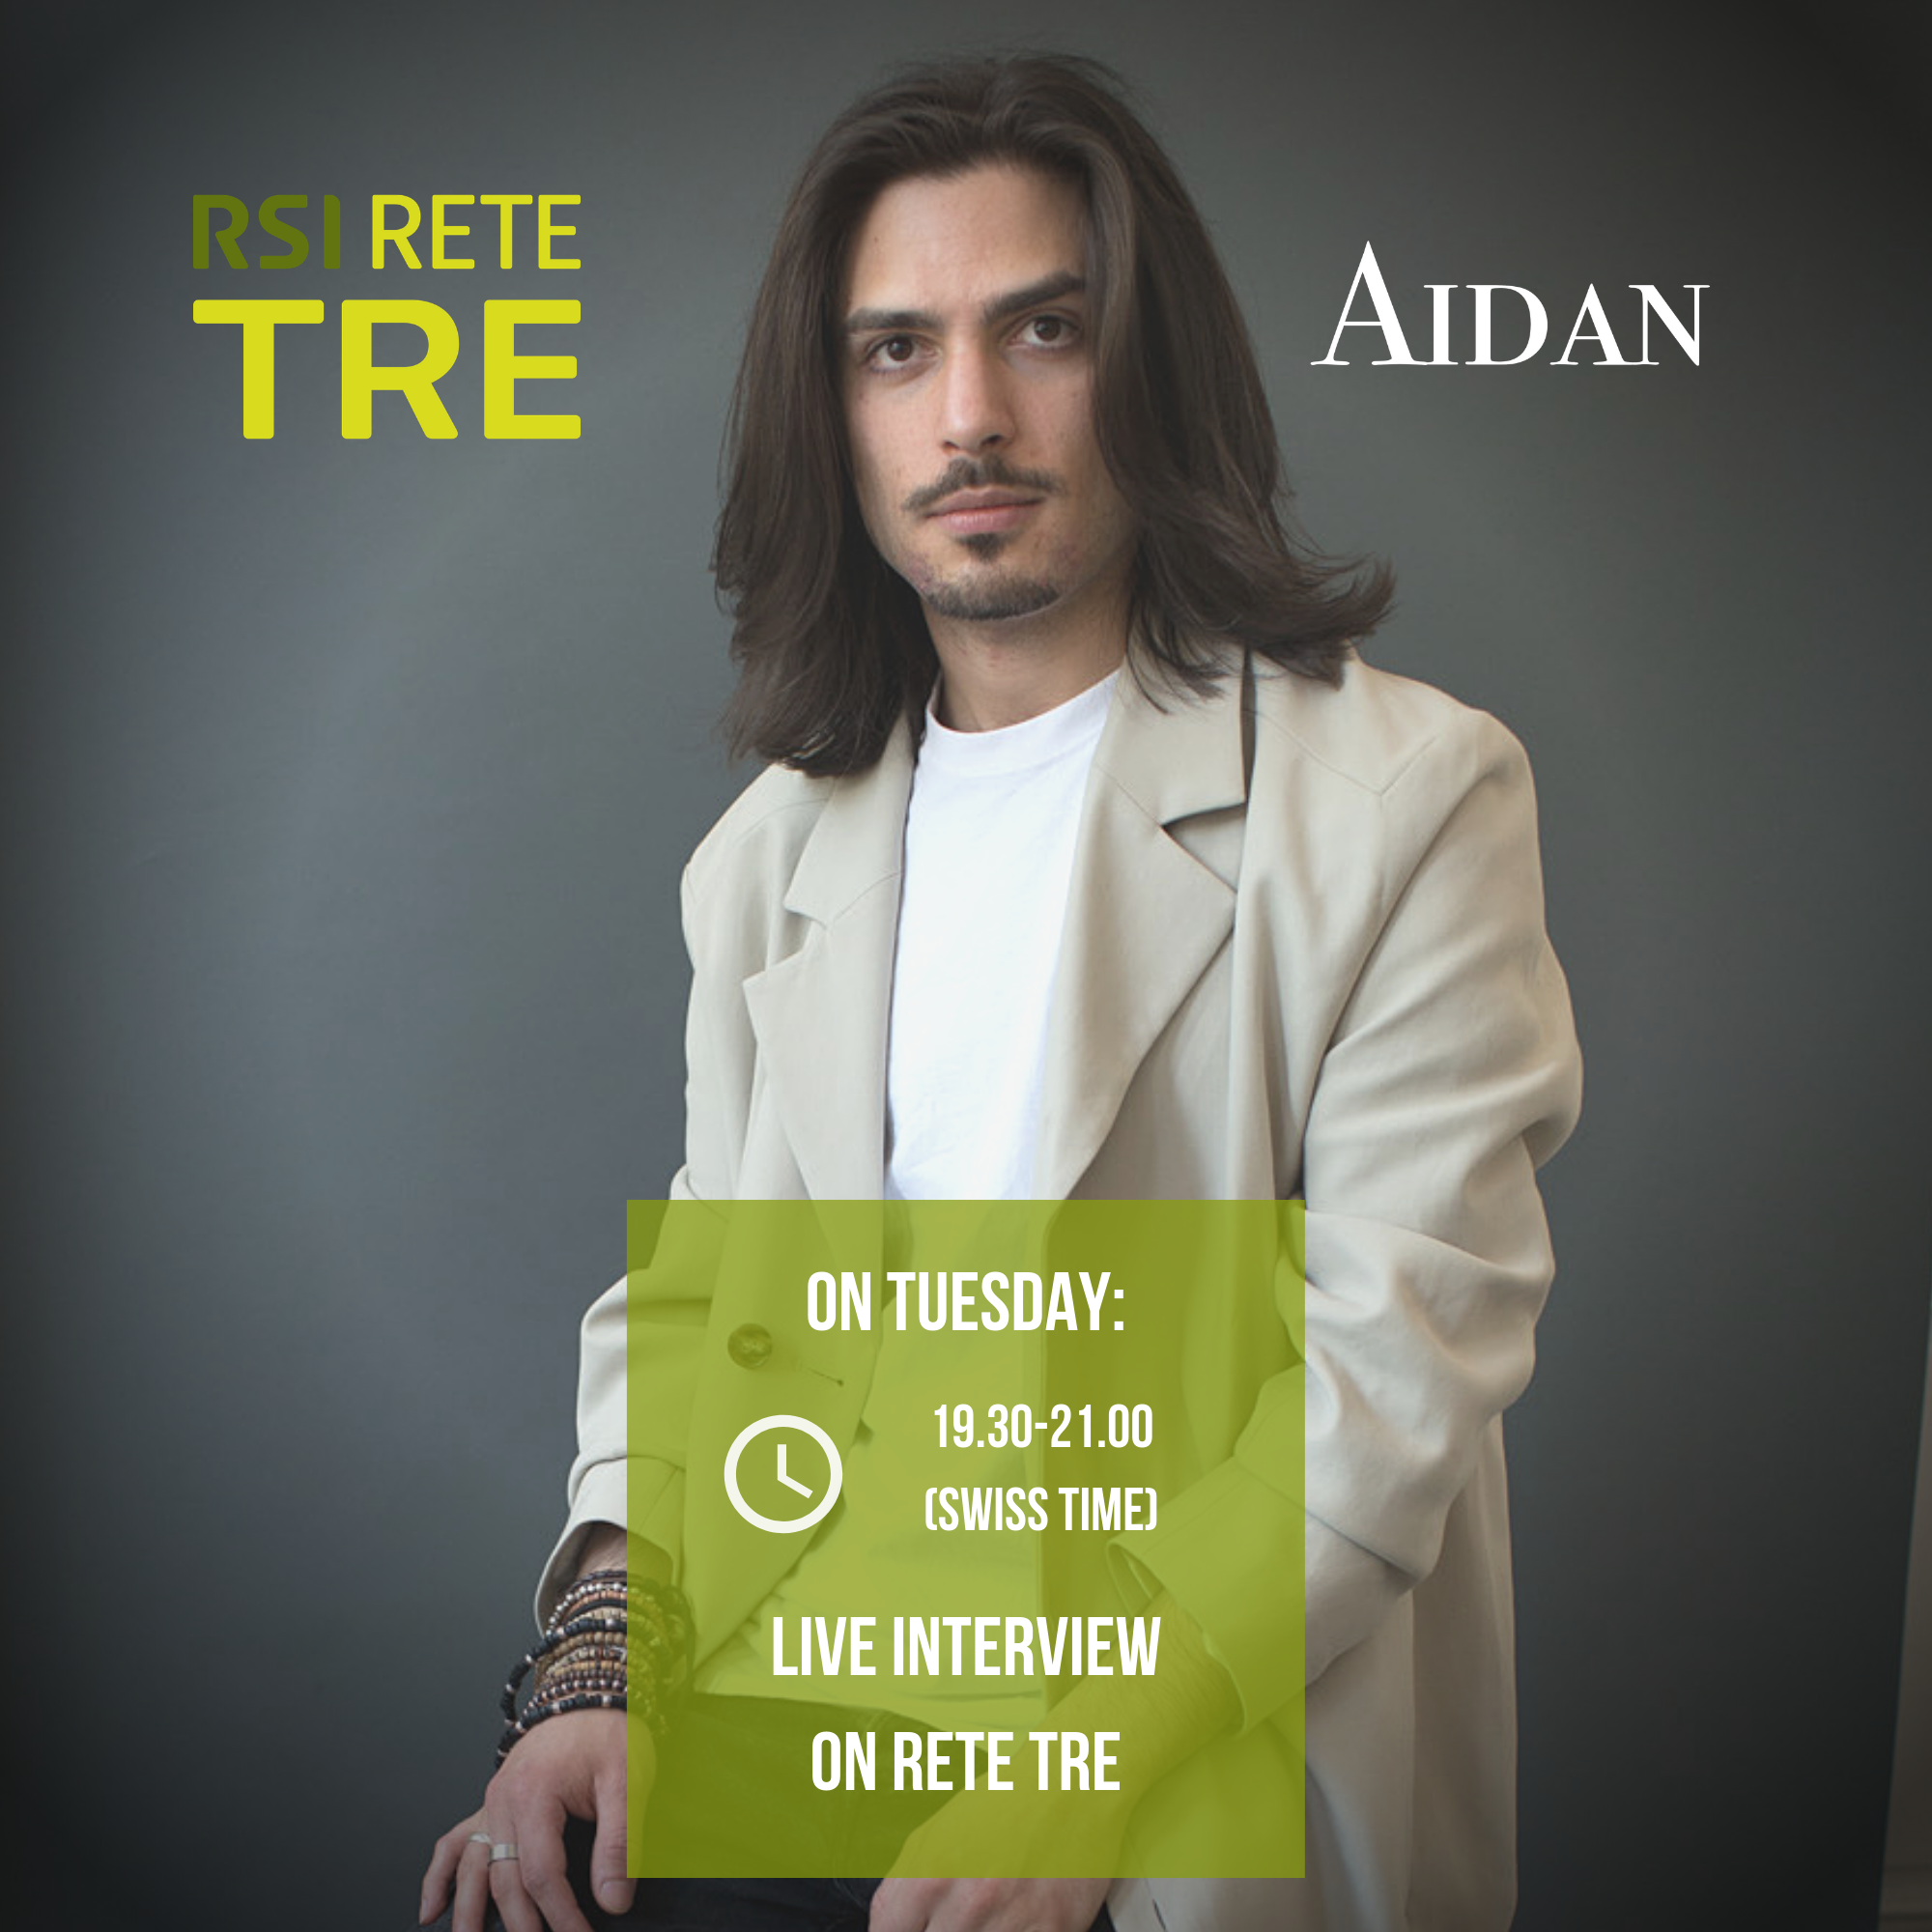 Live interview on Swiss Radio Rete Tre - On Tuesday, at 7.30pm Swiss Time, special live interview with the friends of the swiss italian radio RETE TRE! Tune in!